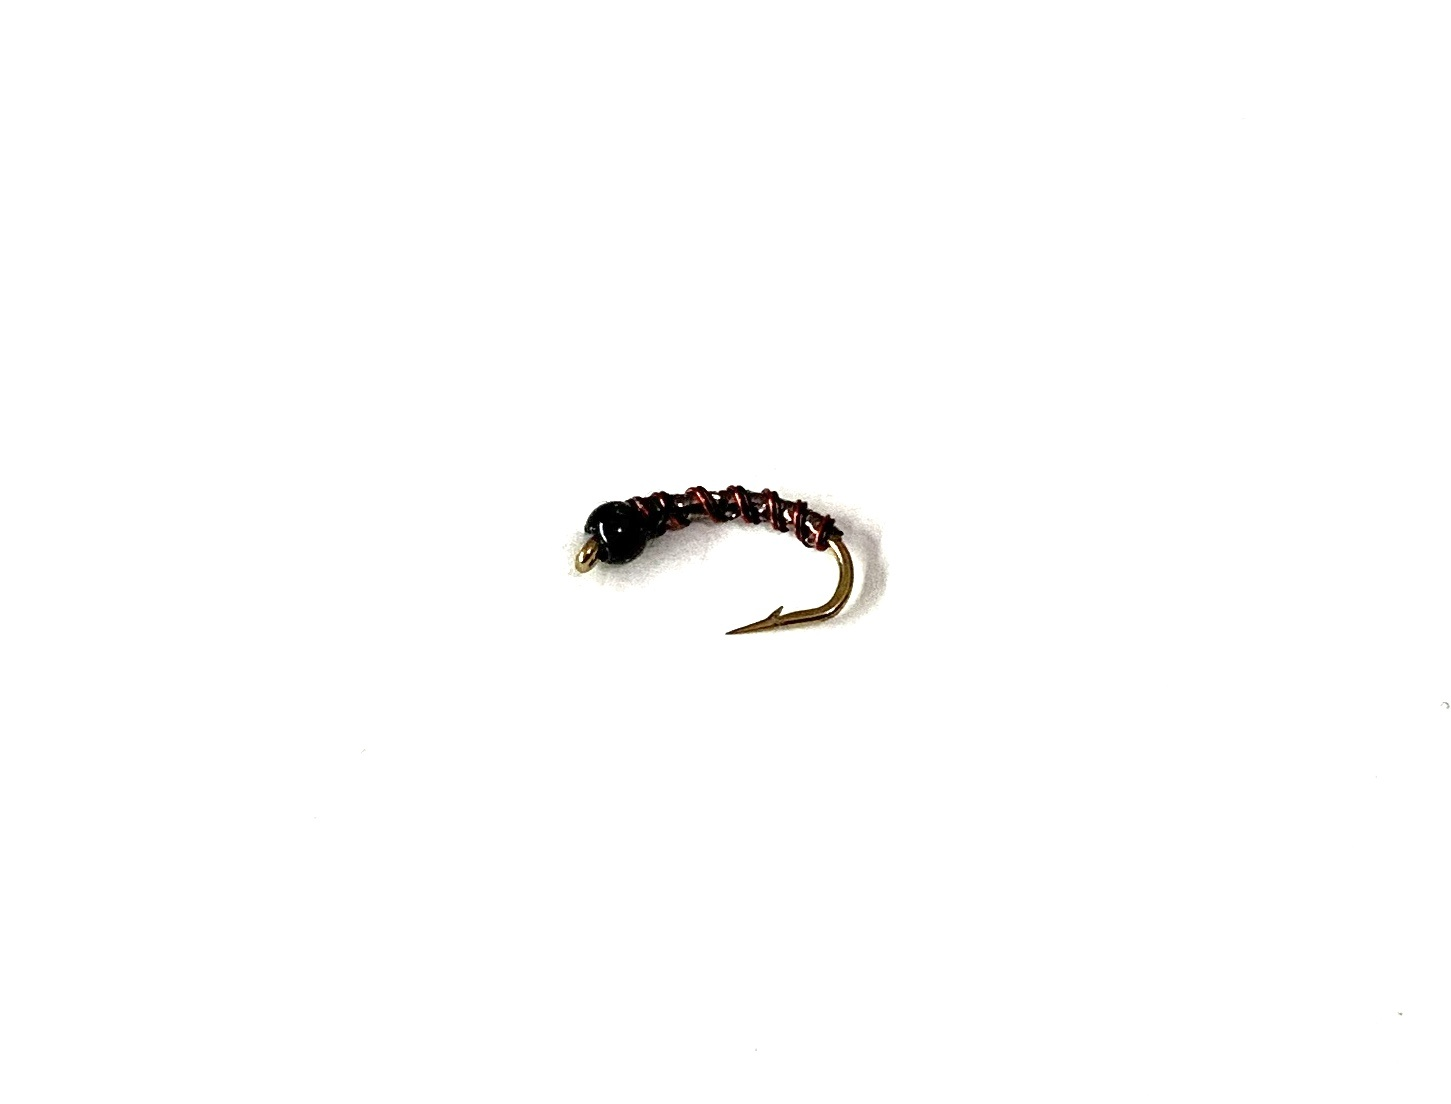 Montana Fly Company Chans Two-Wire Chironomid Pupa